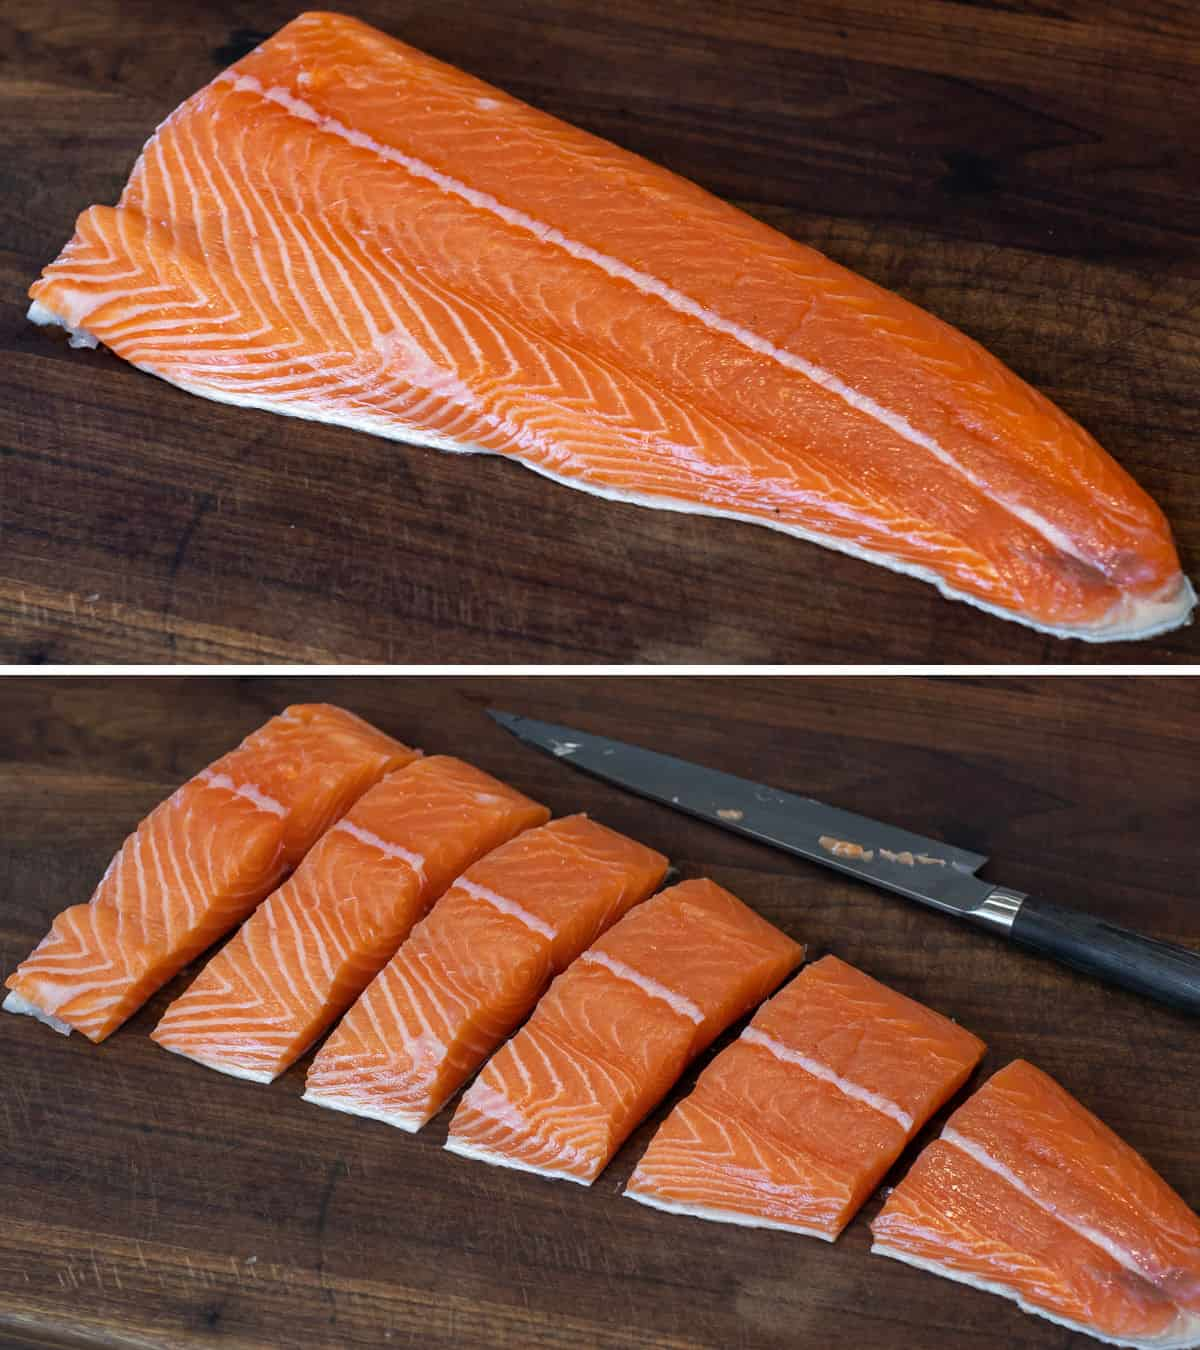 An image of a salmon fillet whole above and cut below.